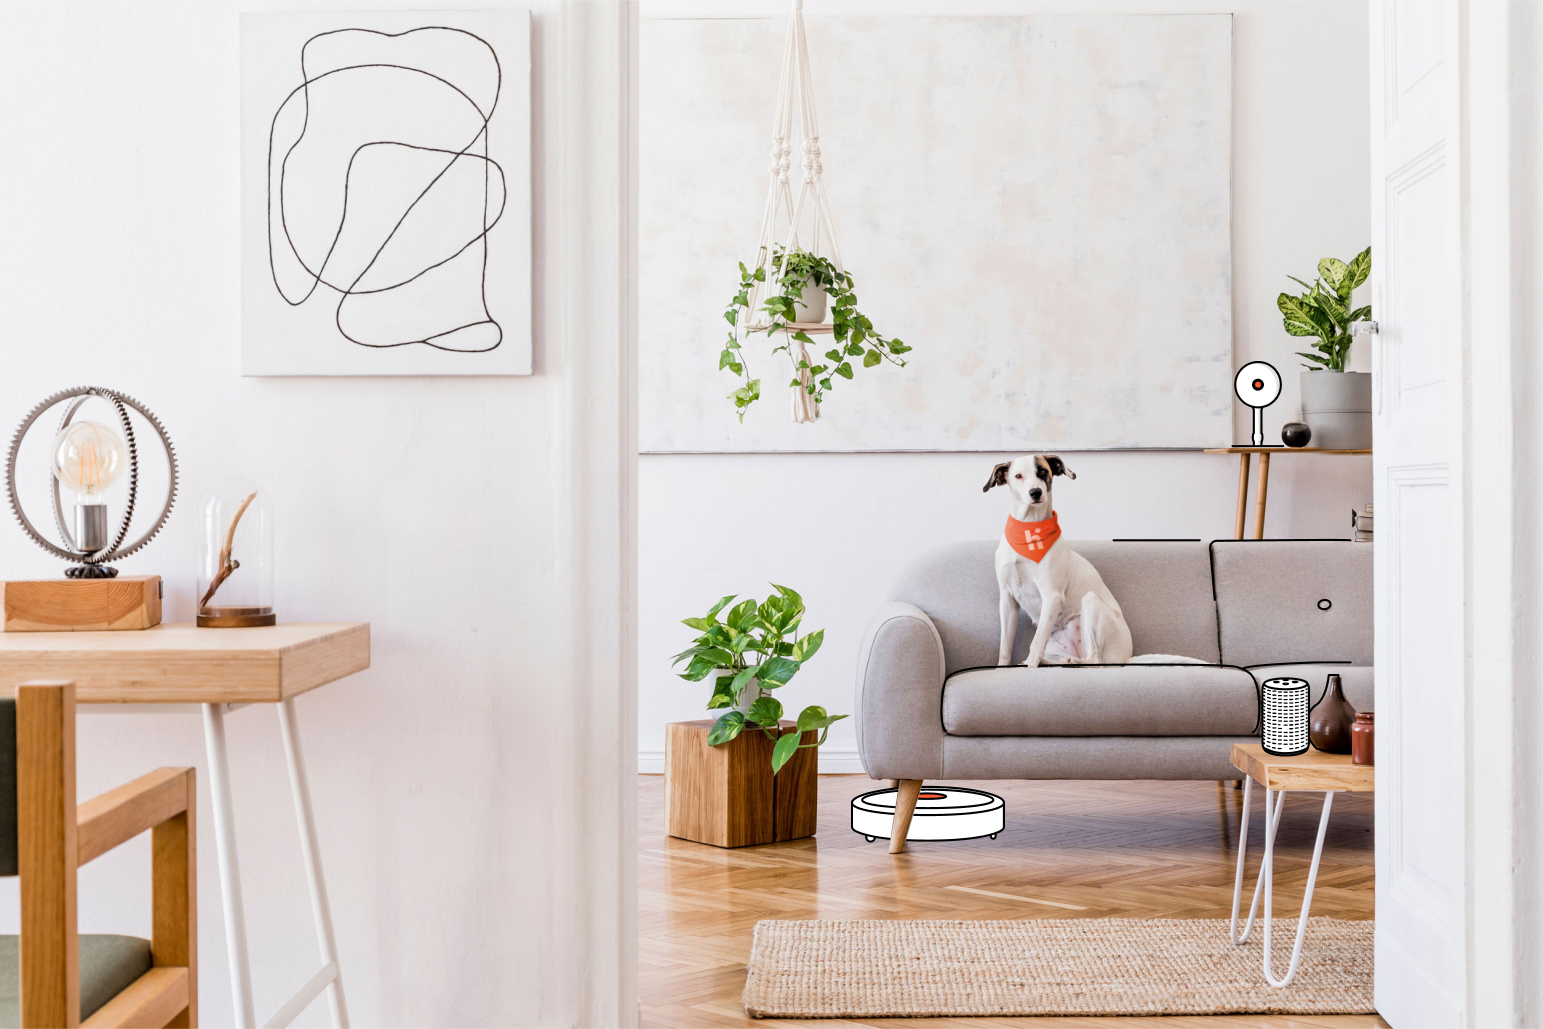 Dog sitting on a sofa inside a home. The dog is wearing an orange bandana, and it's surrounded by green plants and smart home technology.